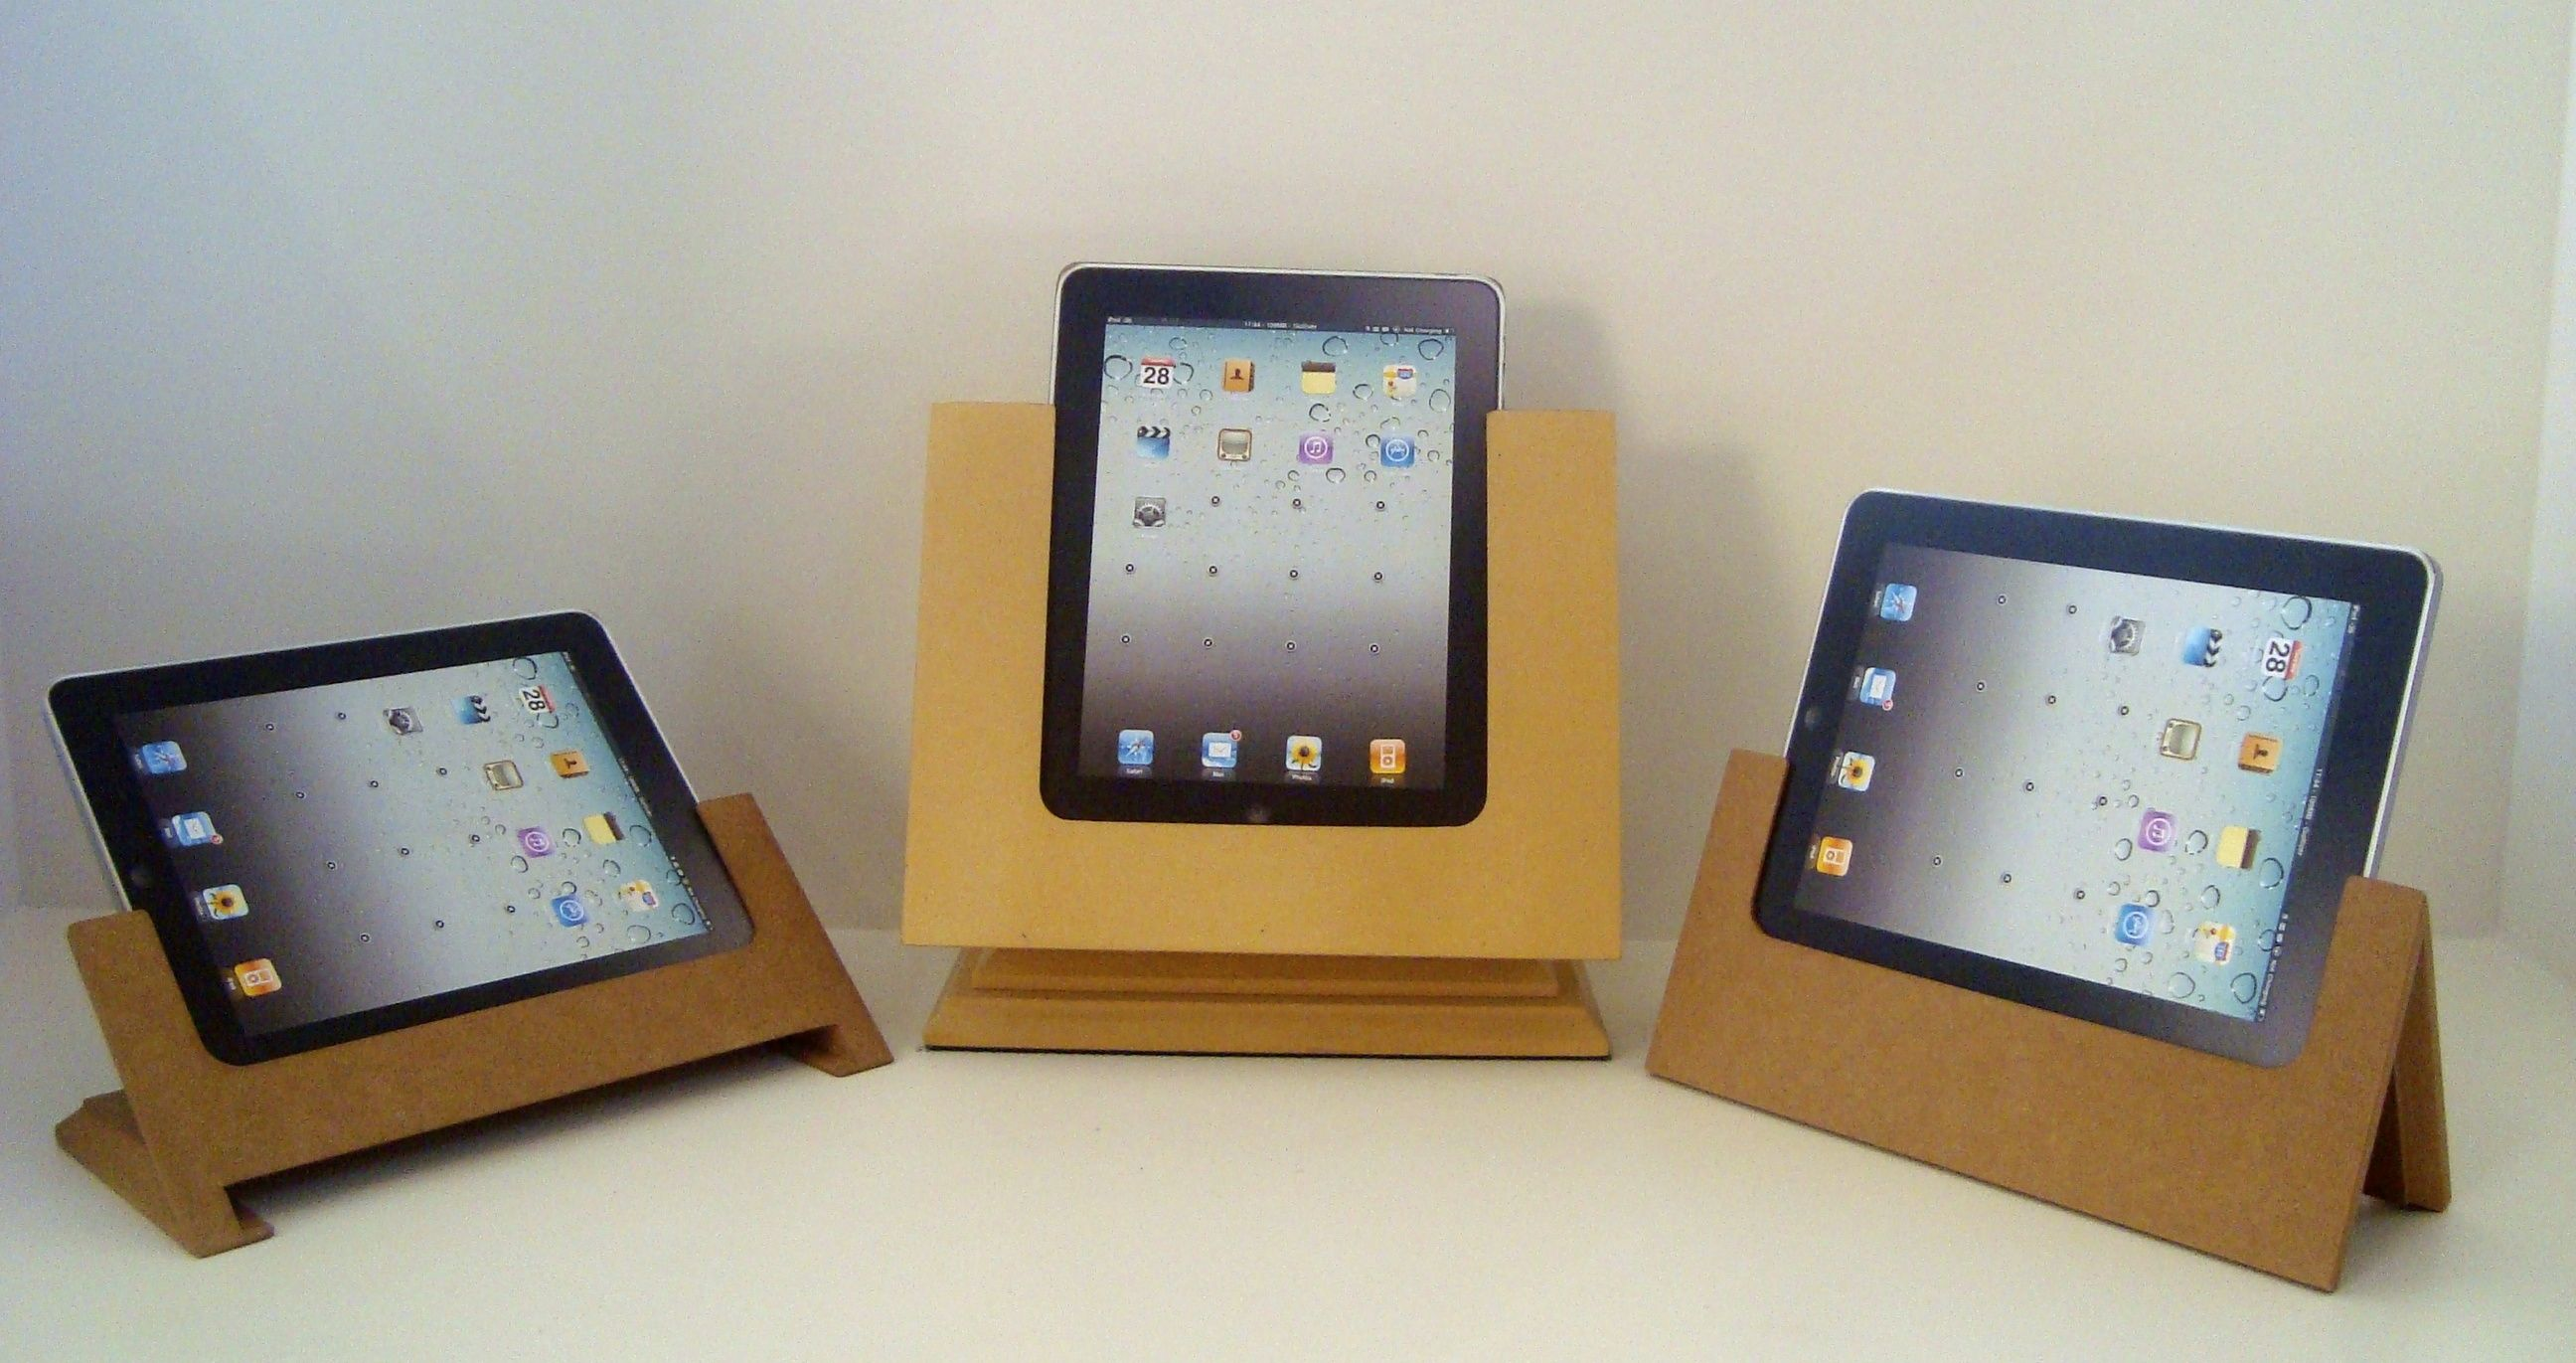 Introducing A Return To American Craftsmanship And Ingenuity With The Introduction Of Tabitat.com Custom Builders Of Fine Crafted Mobile Device Stands, Stations, And Kiosks